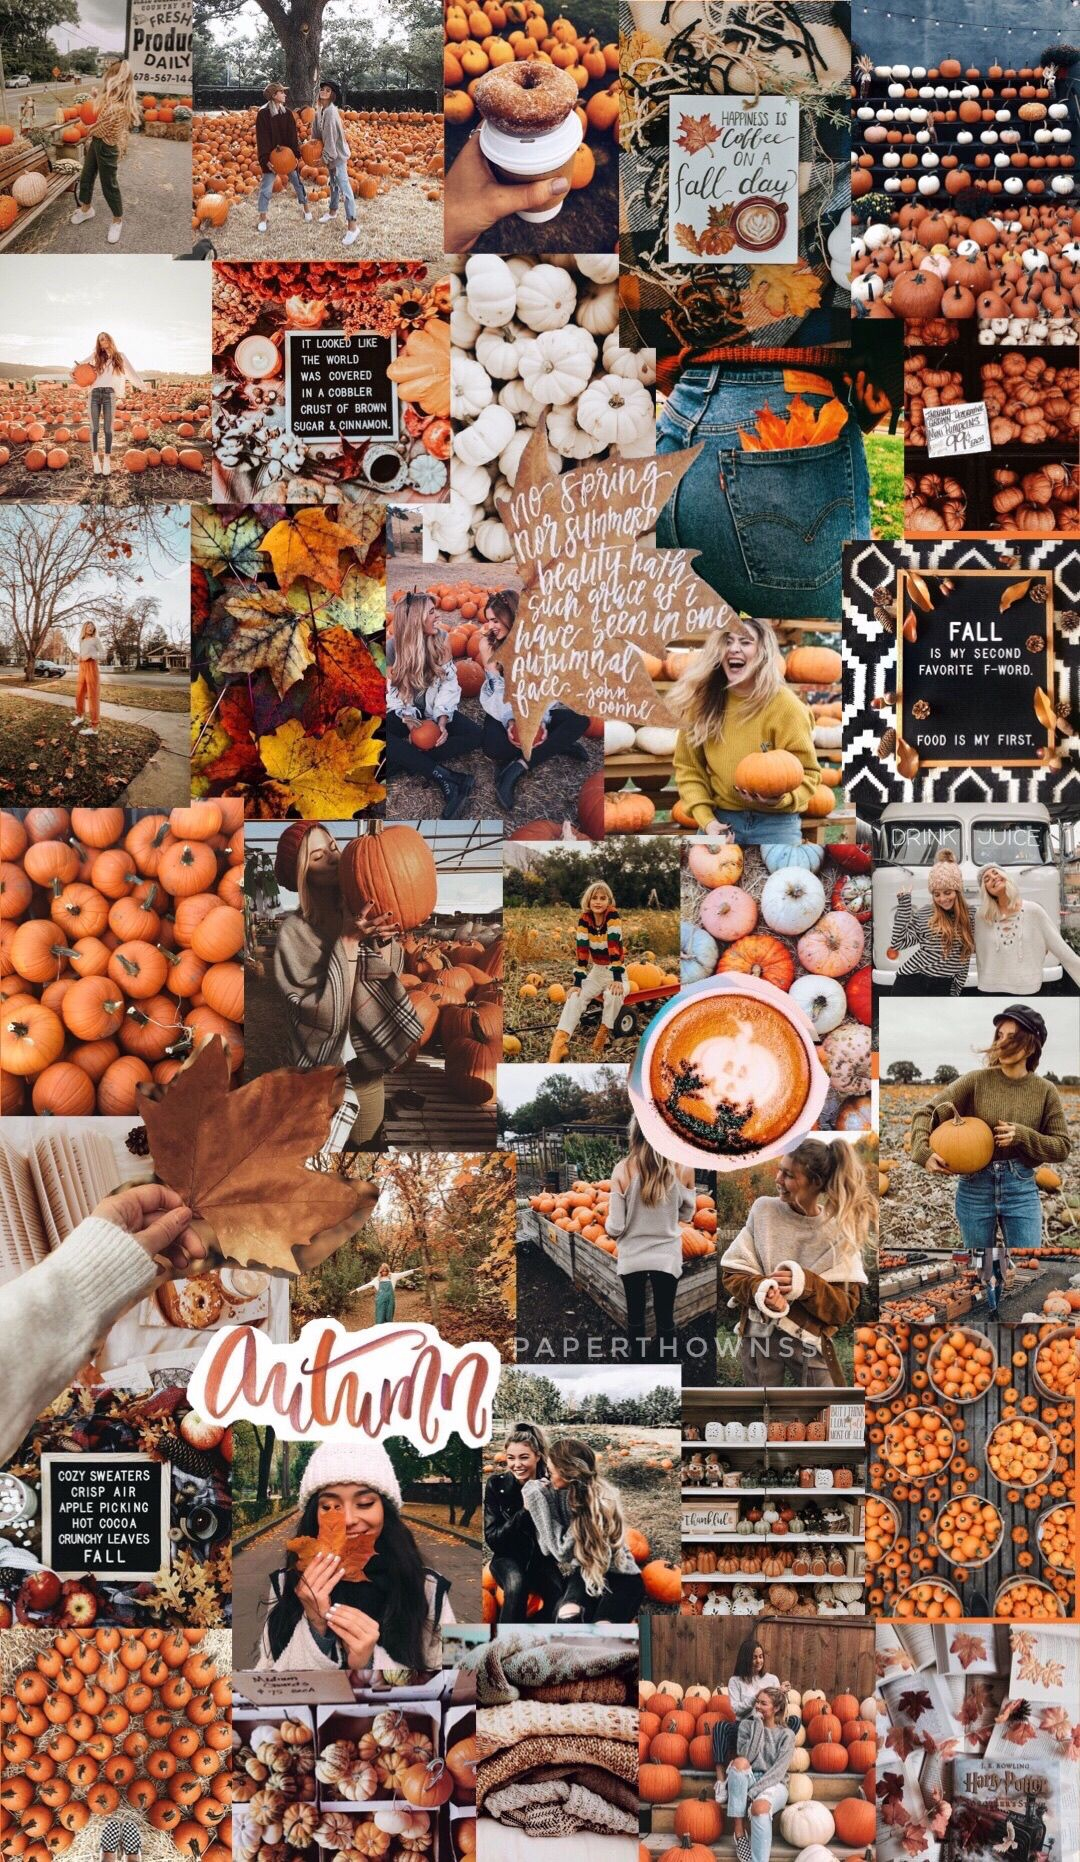 Fall Collage Wallpaper : collage, wallpaper, Autumn, Collage/wallpaper, @paperthownss, Wallpaper,, Halloween, Wallpaper, Iphone